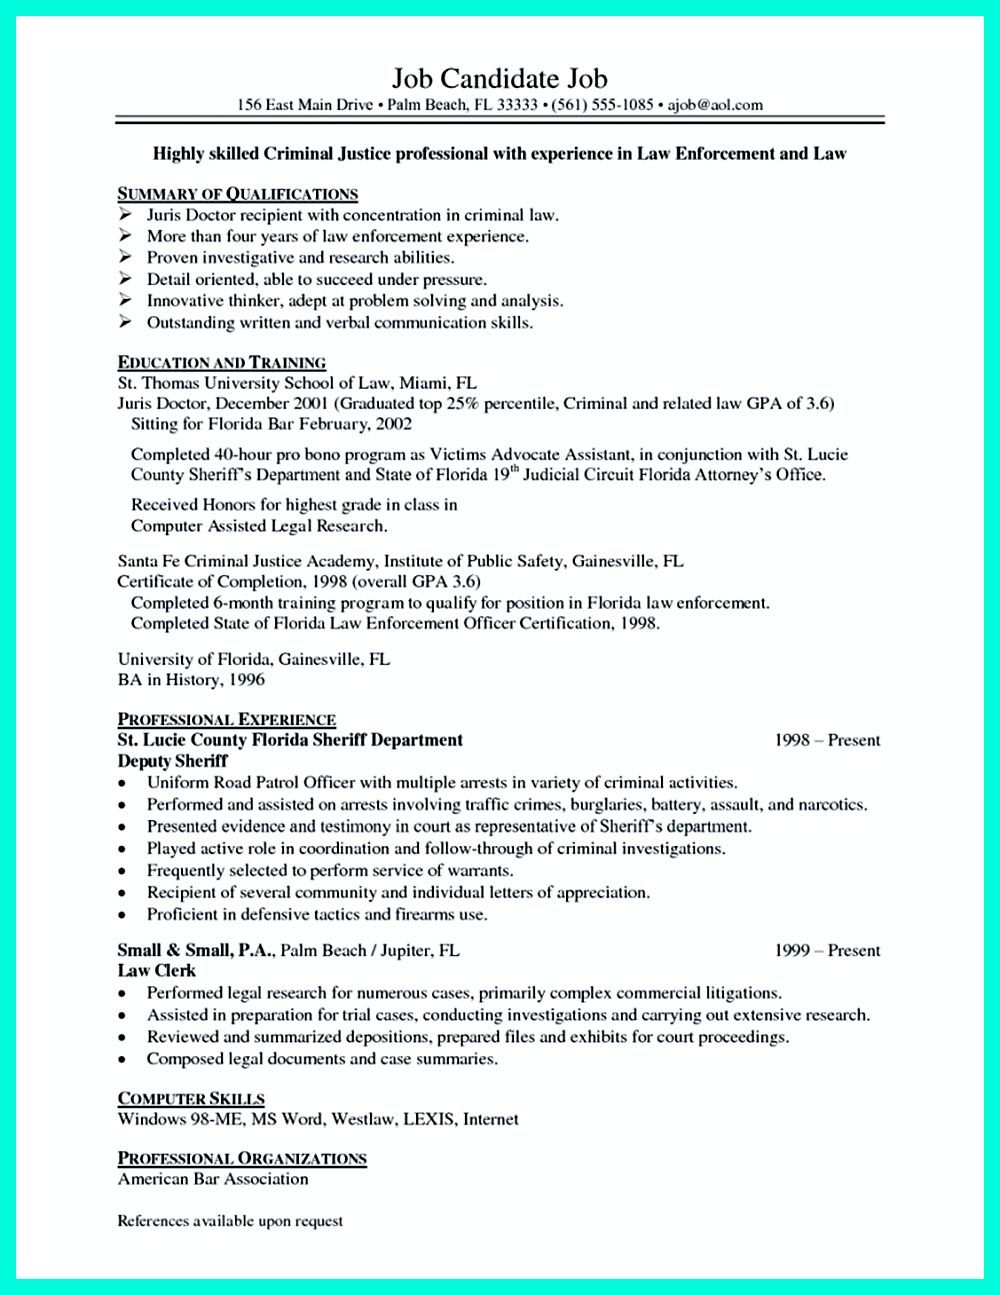 Best Criminal Justice Resume Collection From Professionals Criminal Justice Resume Criminal